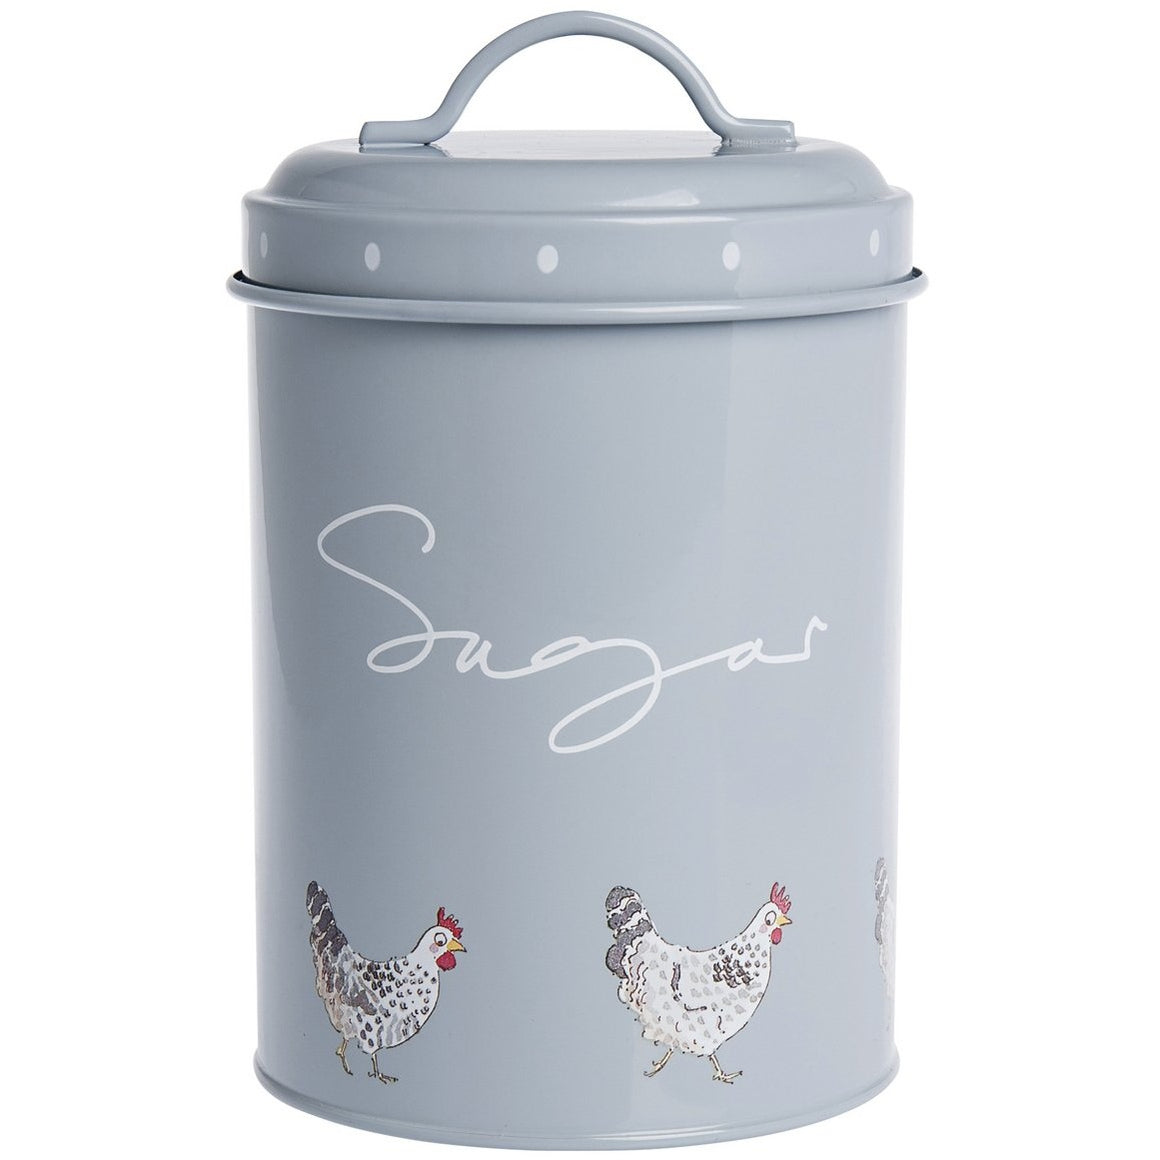 Sophie Allport Chicken Sugar Tin